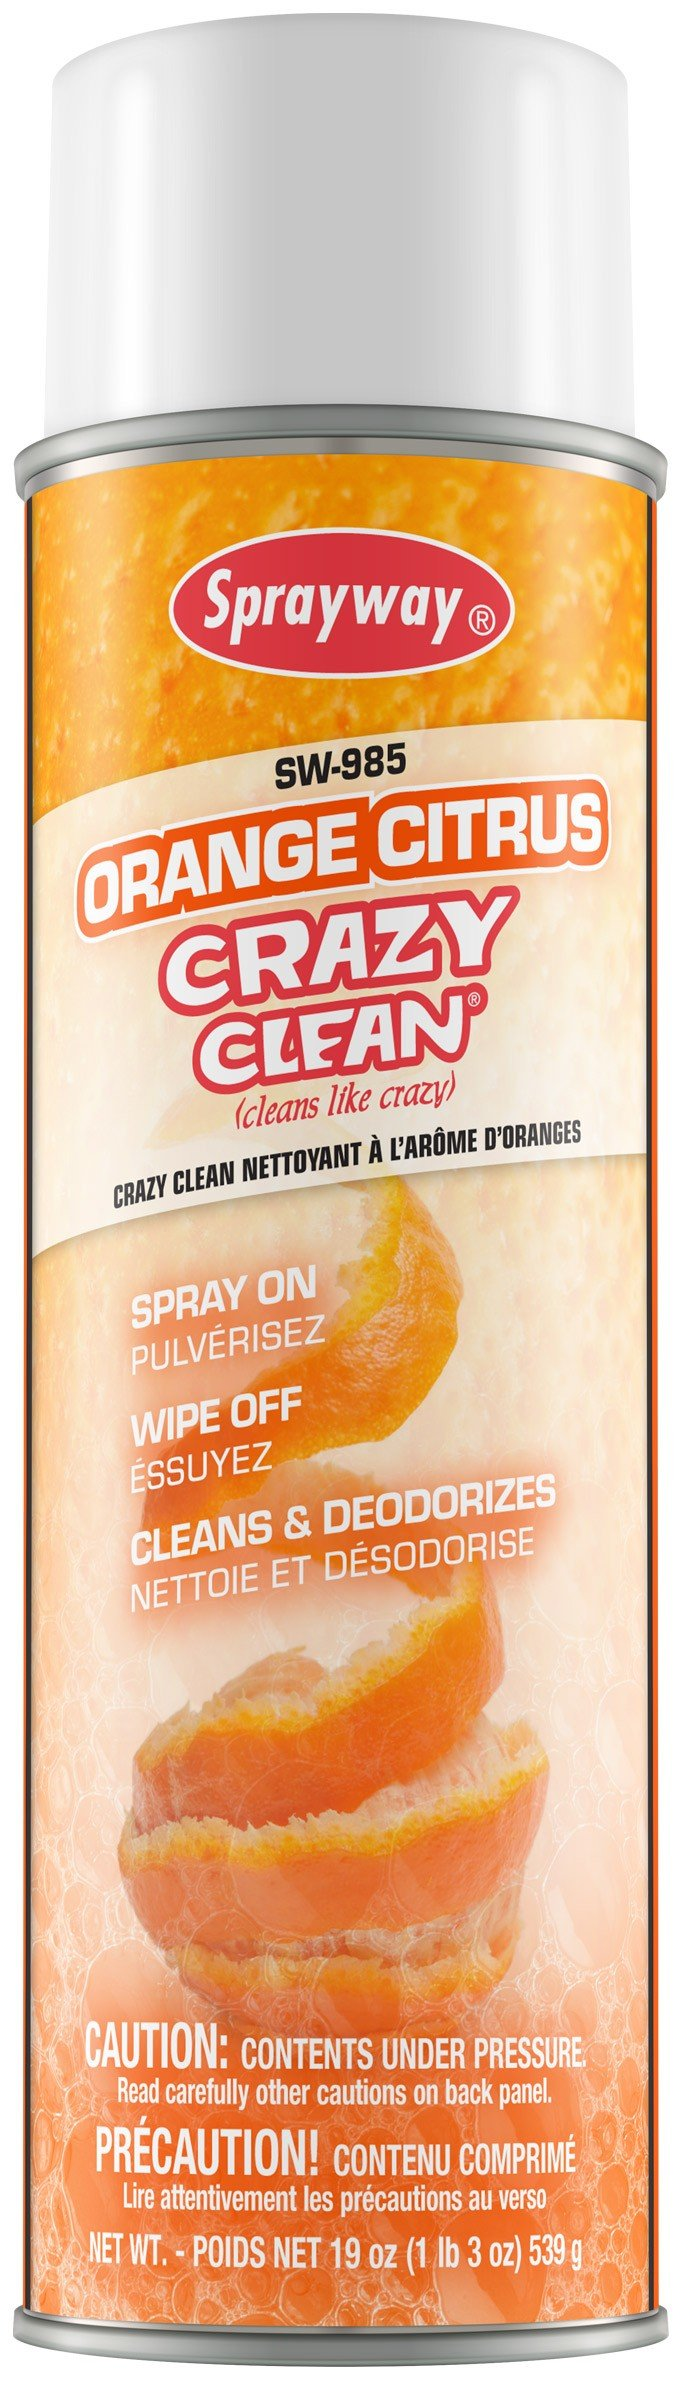 Sprayway SW985 Orange Citrus Crazy Clean 12/Case by Sprayway (Image #1)